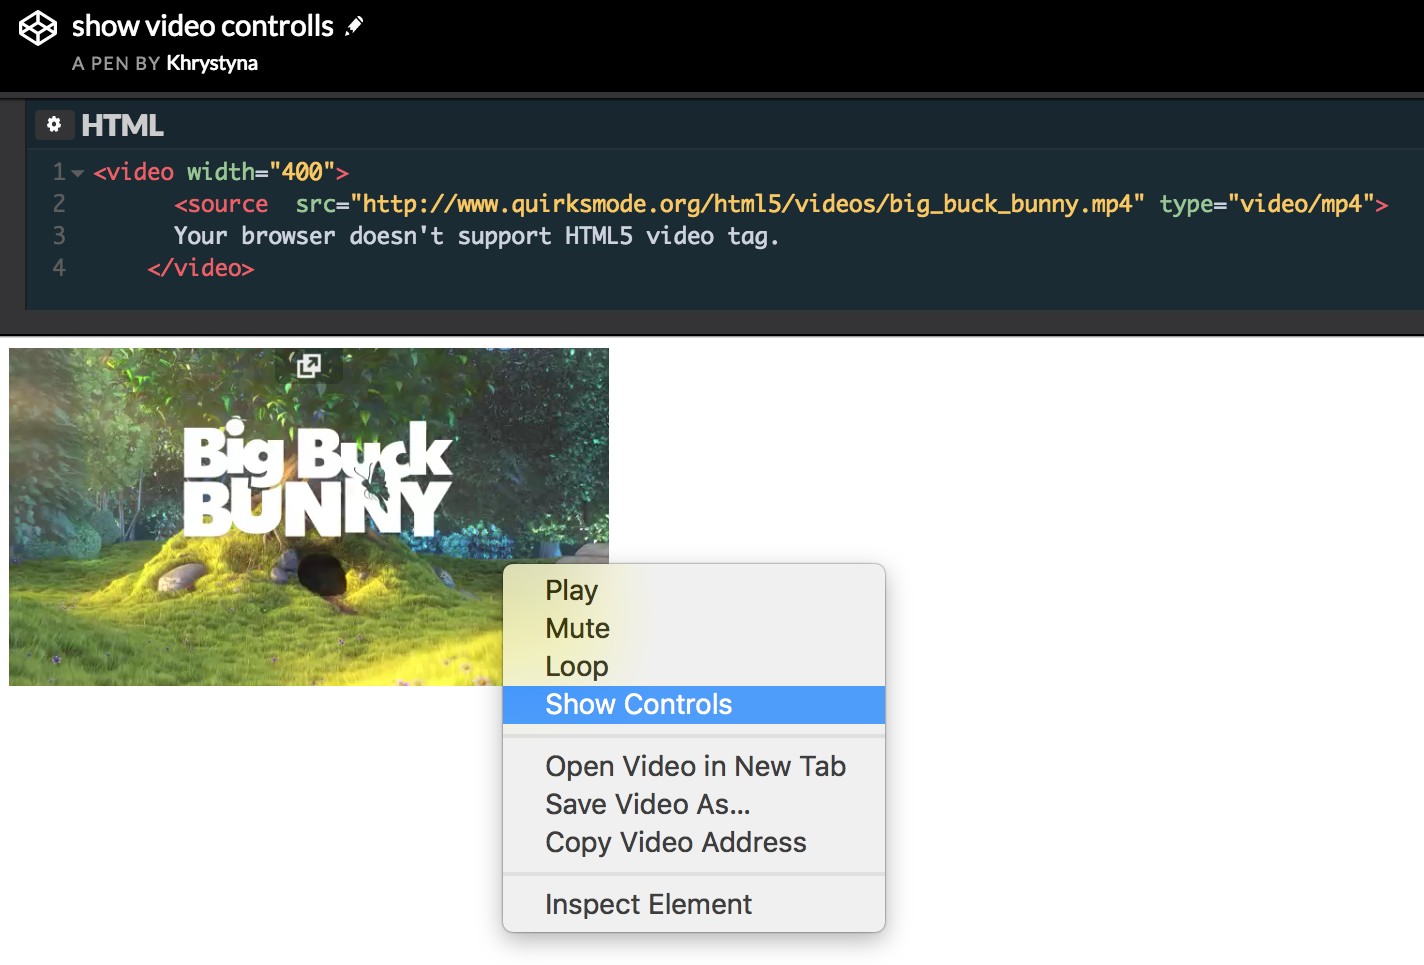 Using context menu to show video controls and manipulate video playback